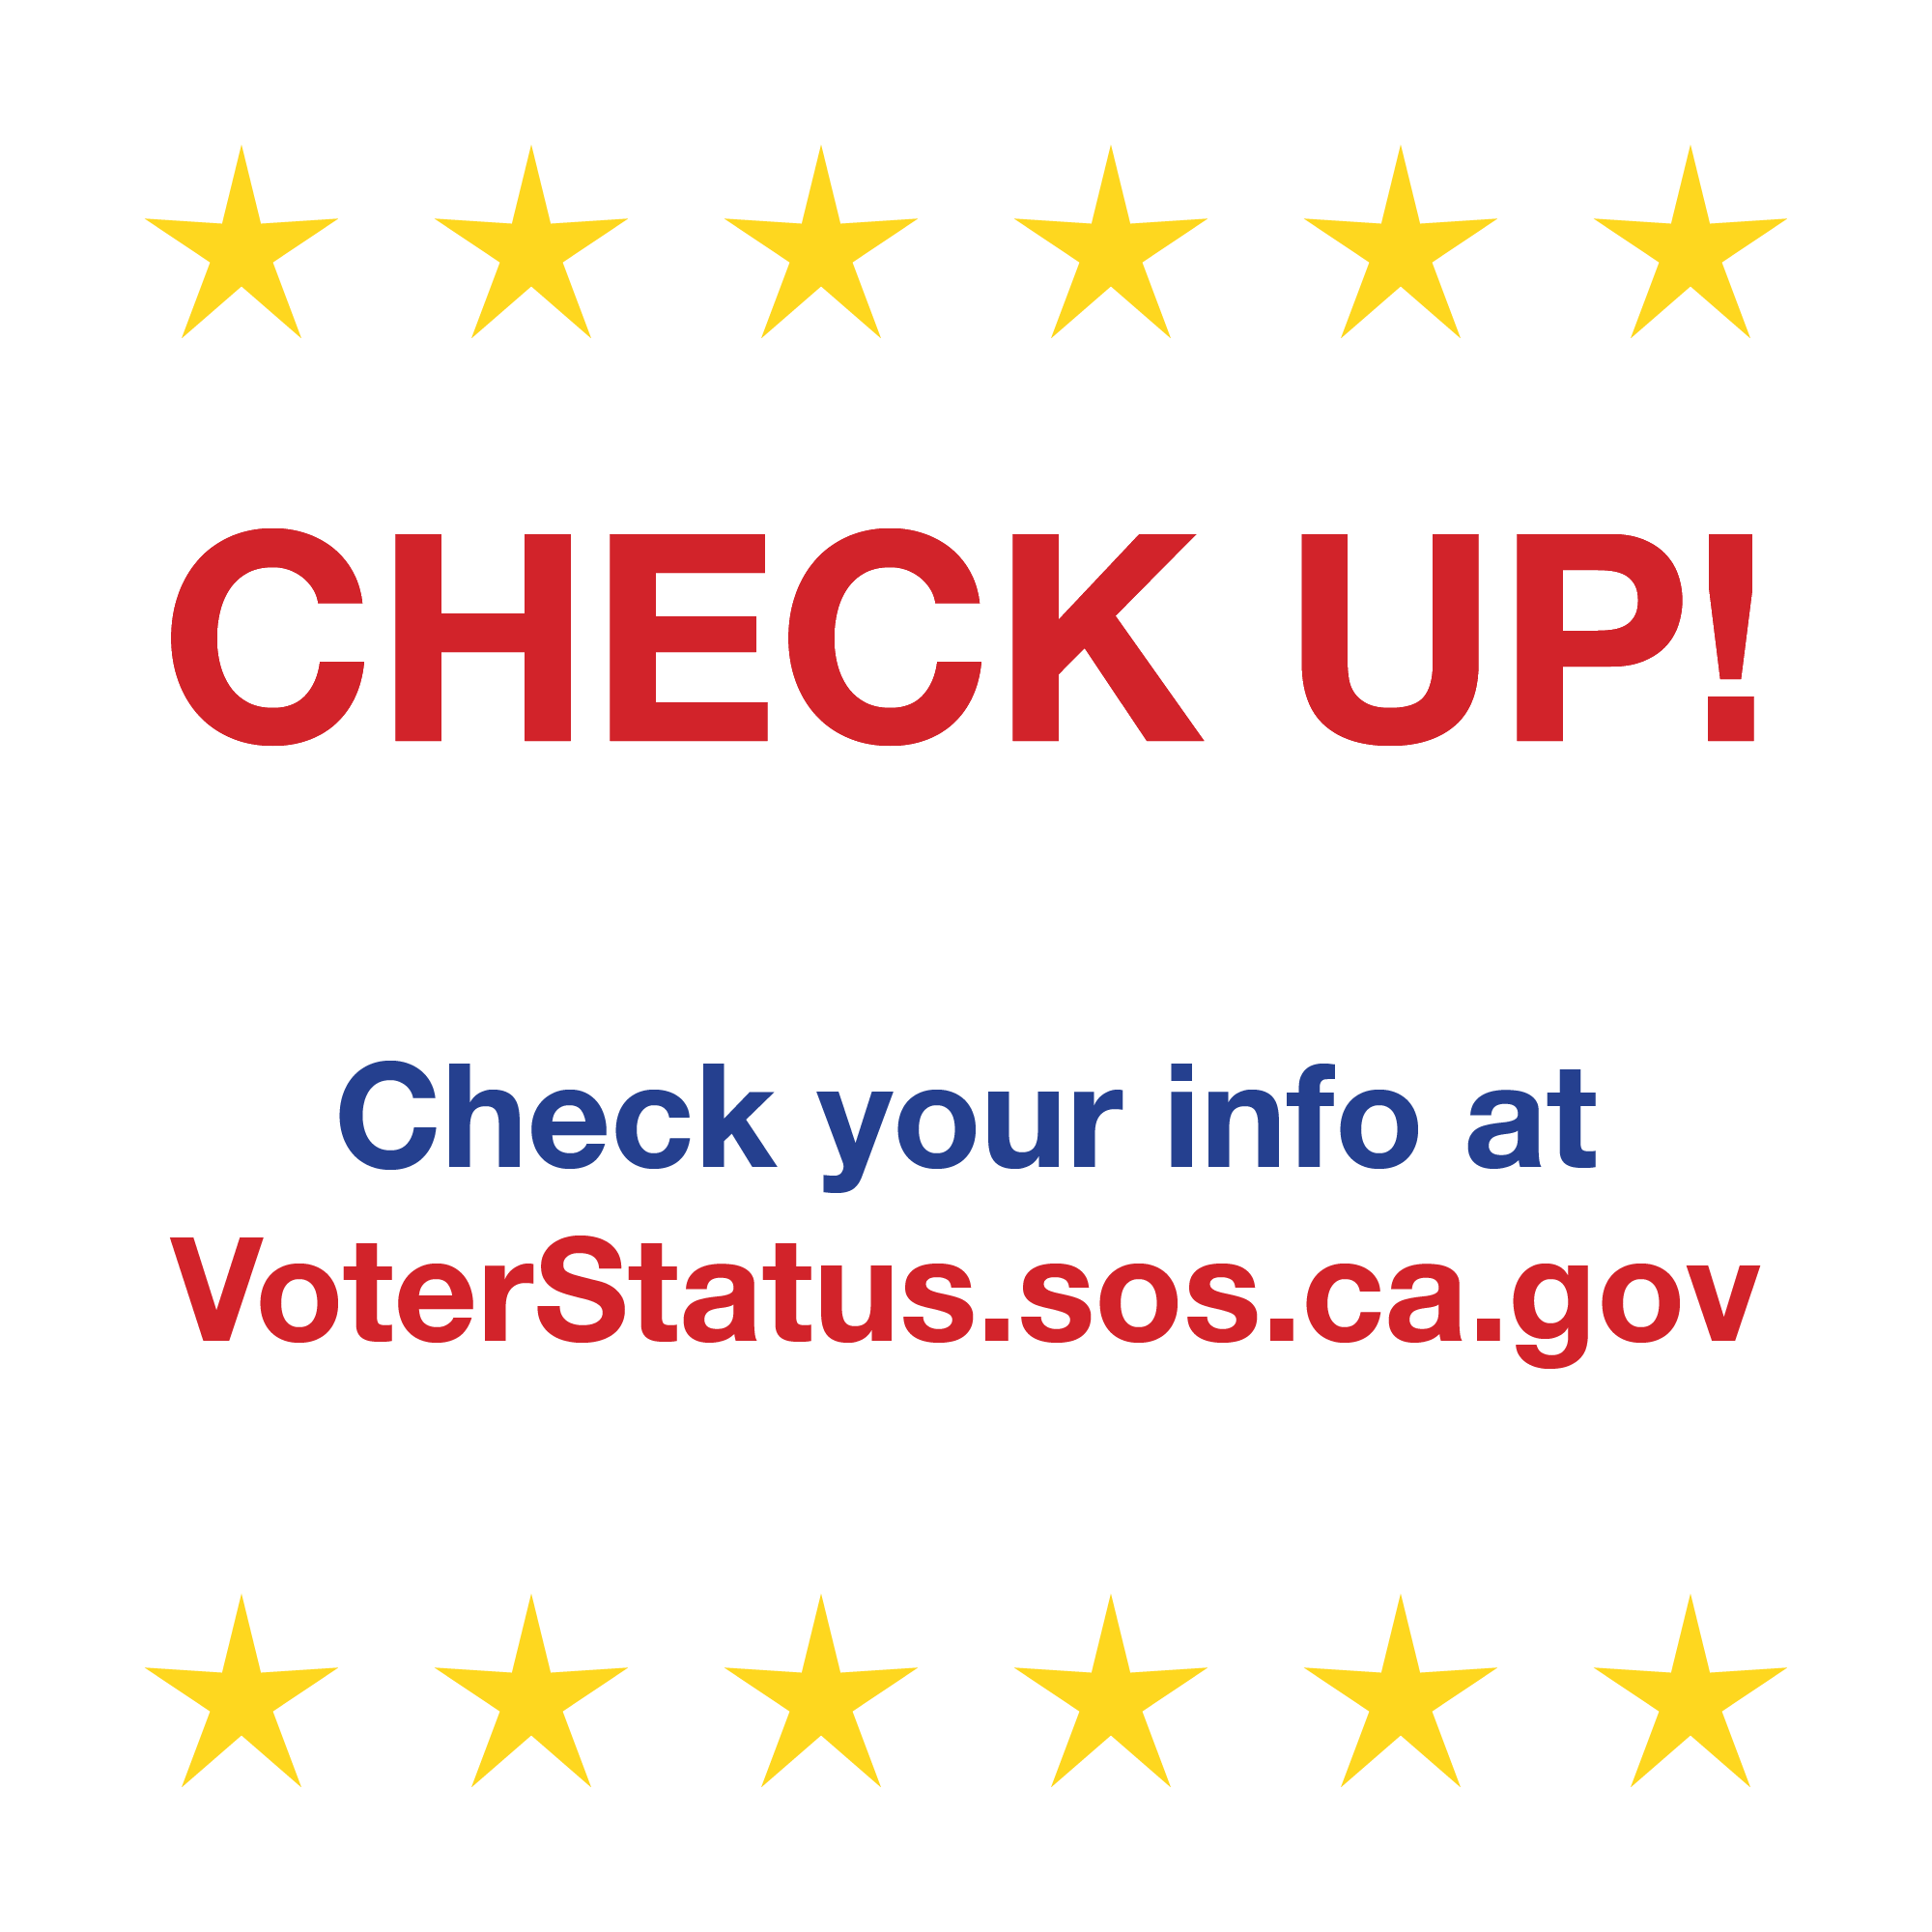 Check your info at VoterStatus.sos.ca.gov